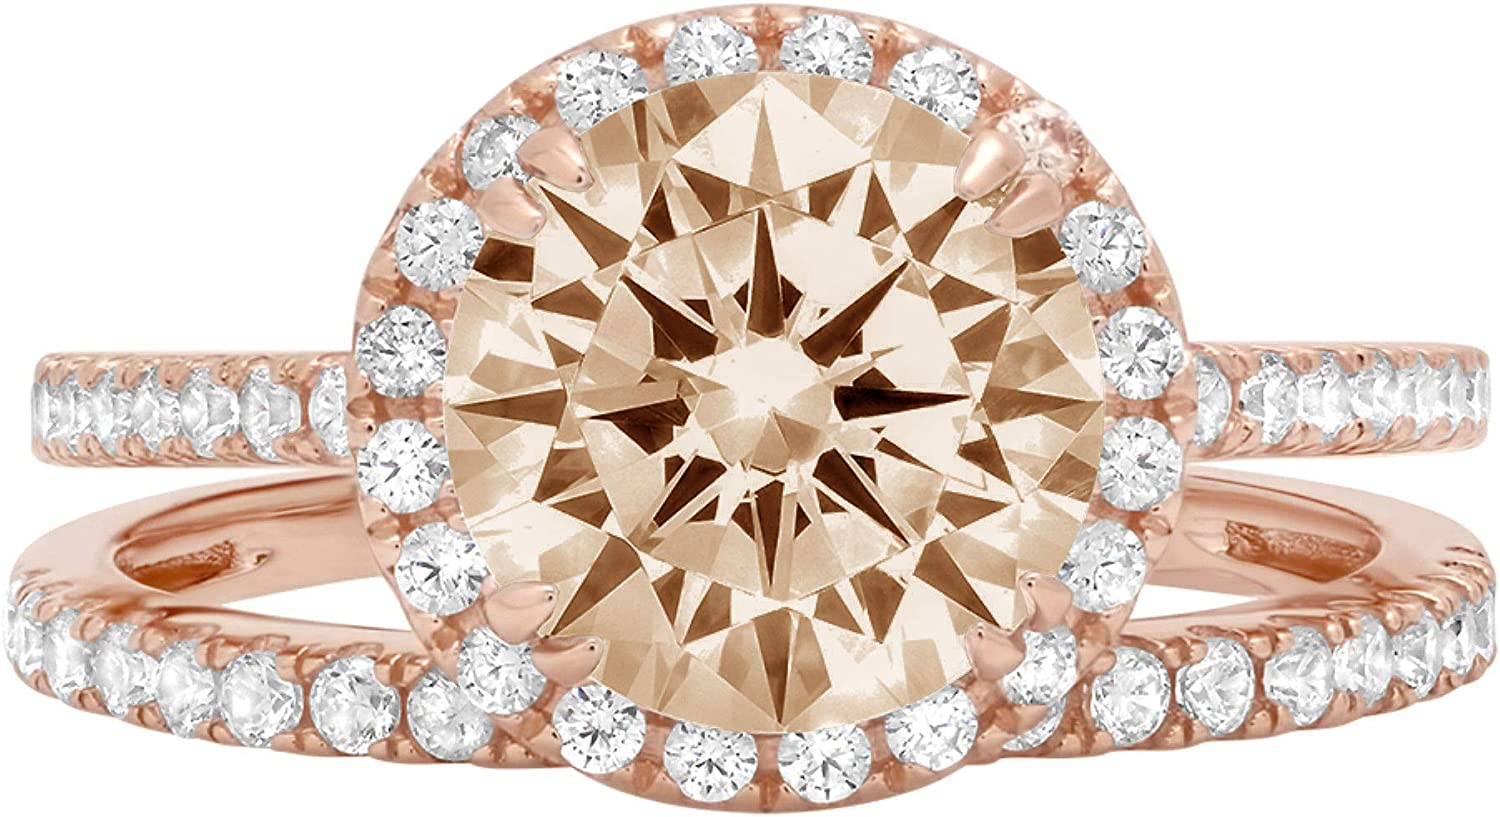 2.69ct Round Cut Halo Pave Solitaire with Accent Brown Champagne Simulated Diamond Designer Statement Classic Ring Band Set Real Solid 14k Rose Gold